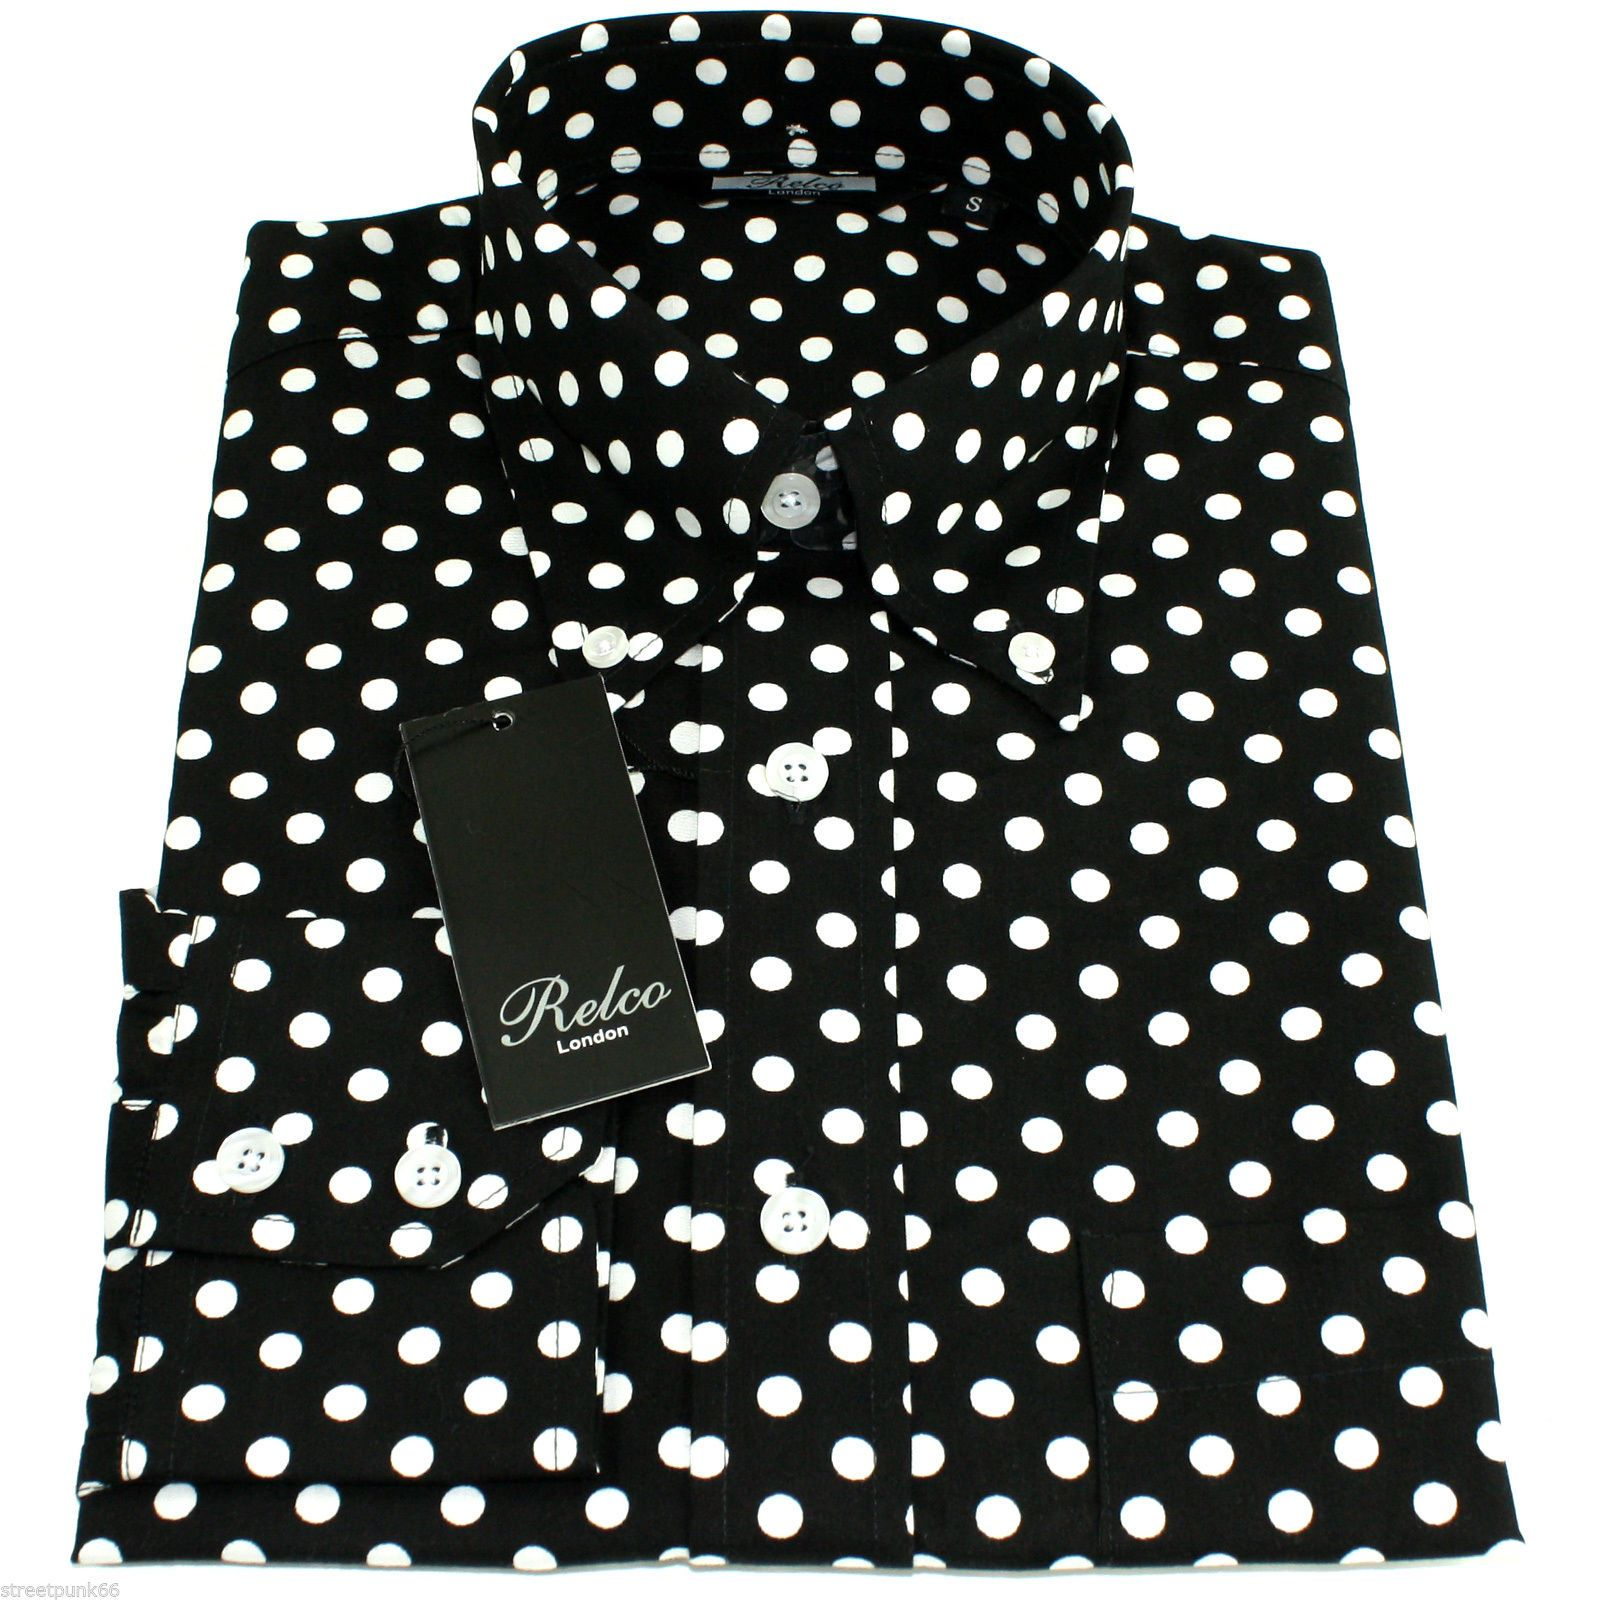 Shop for Polka Dot Men's Clothing, shirts, hoodies, and pajamas with thousands of designs.